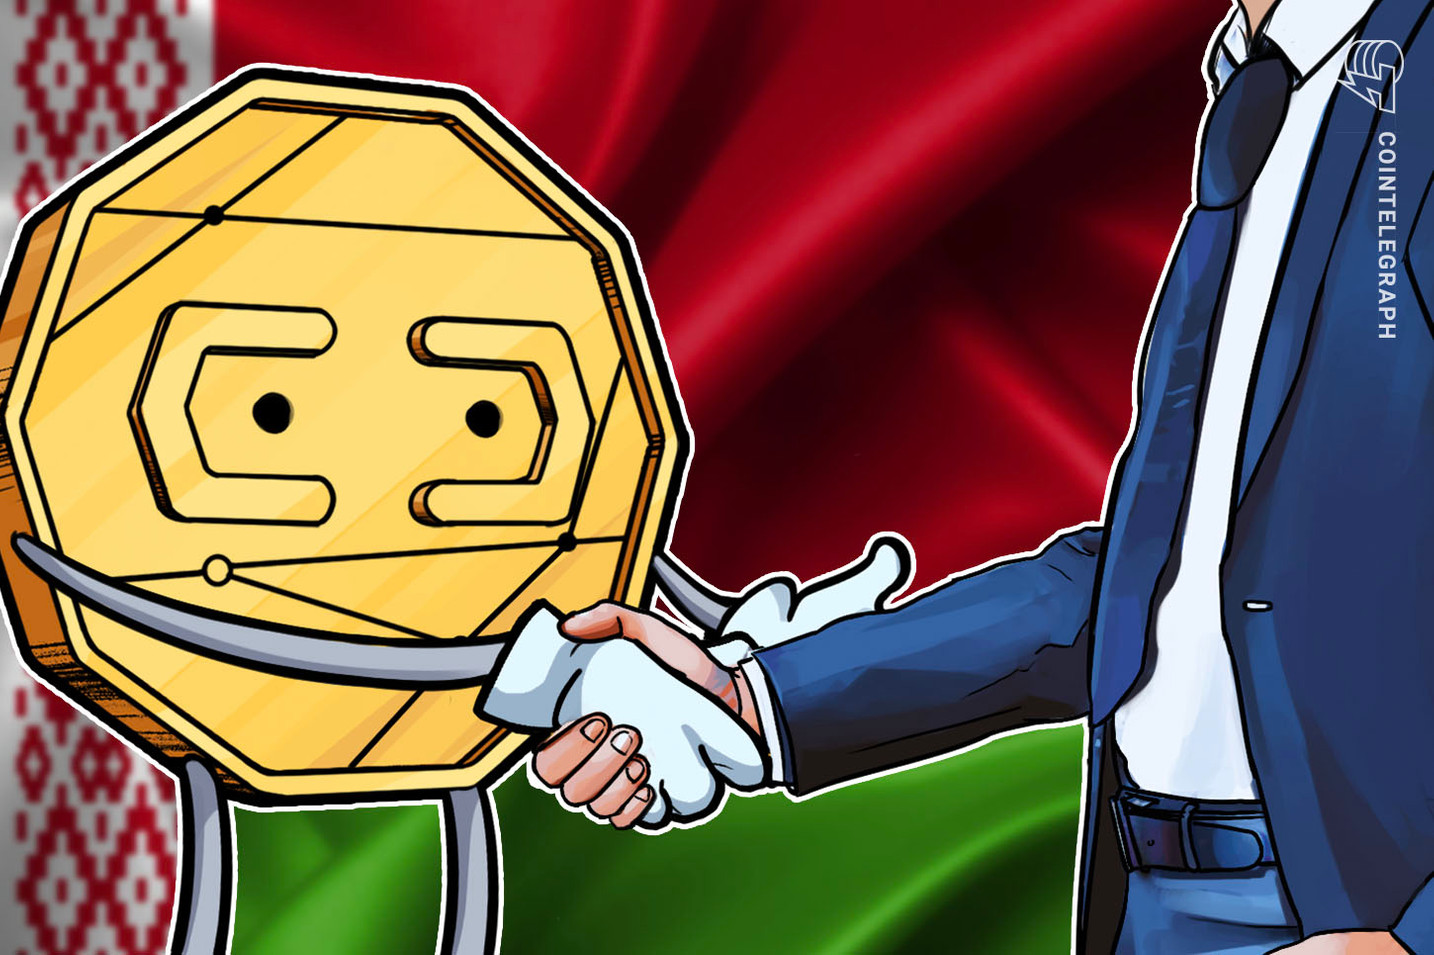 Belarus tech innovation zone may take on regulatory role for crypto business